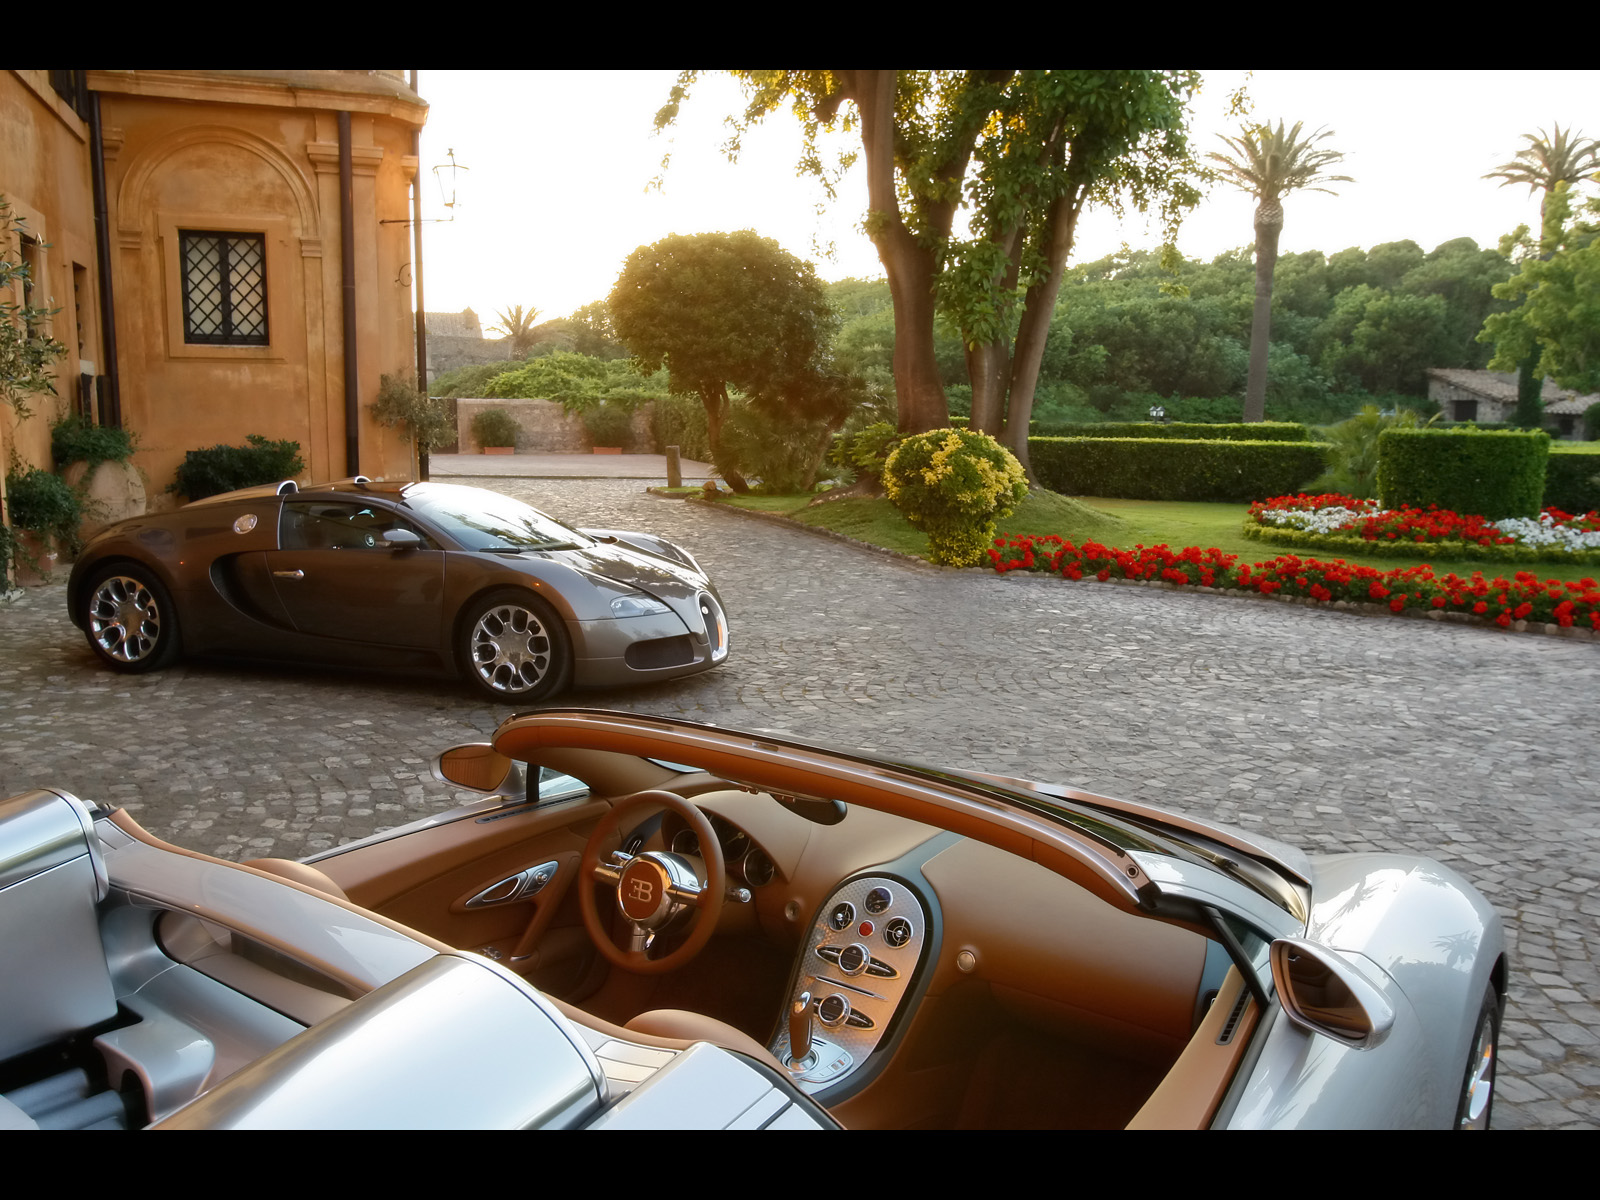 Image Bugatti Veyron Duo 2 Wallpapers And Stock Photos